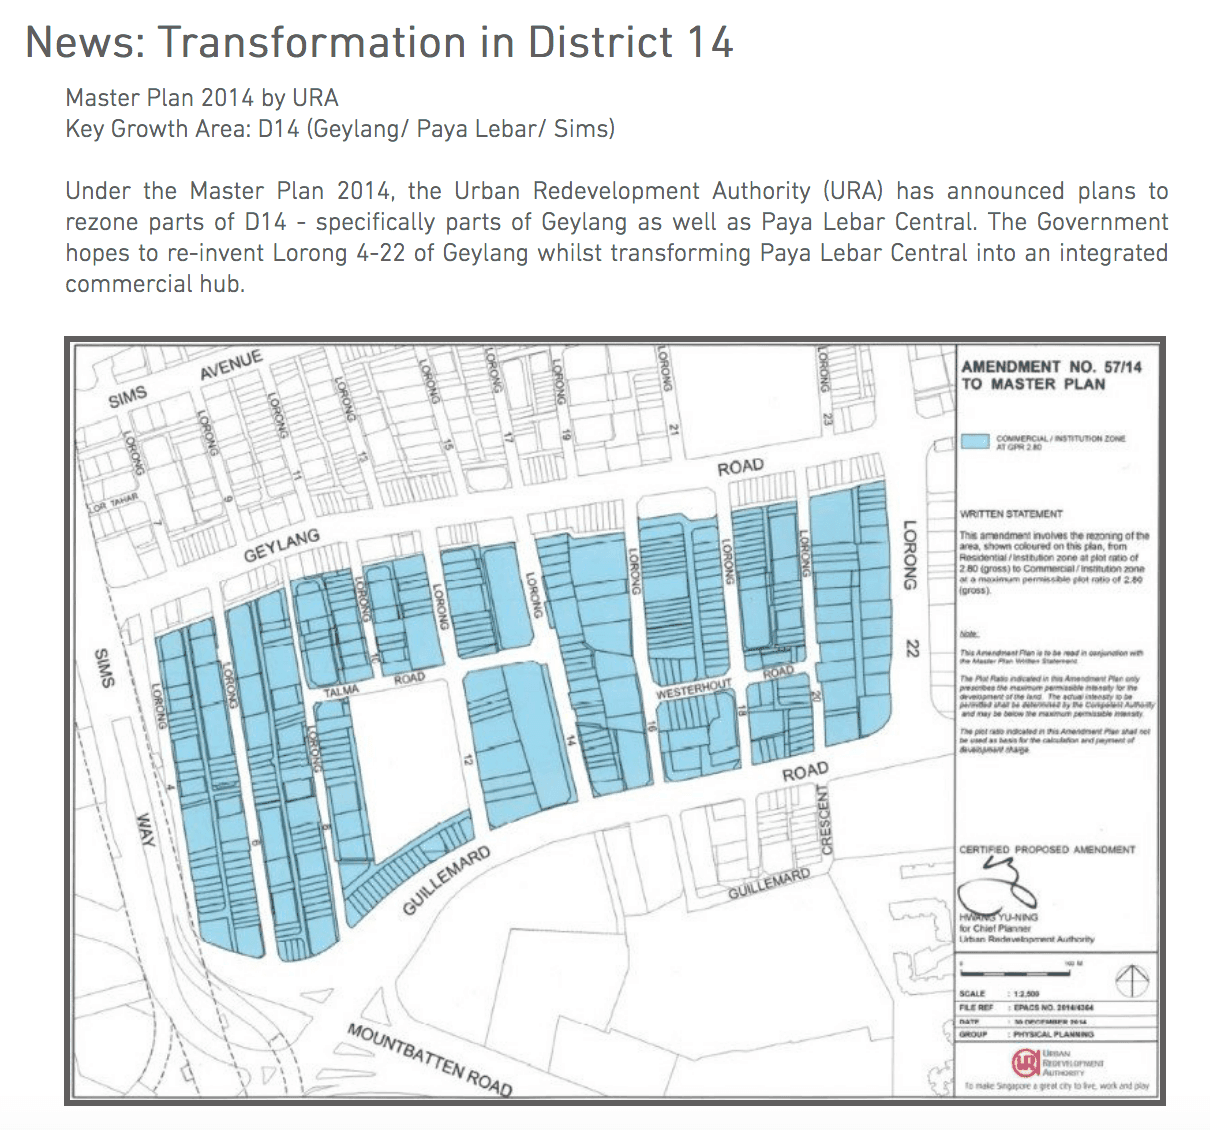 Geylang New Transformation District 14